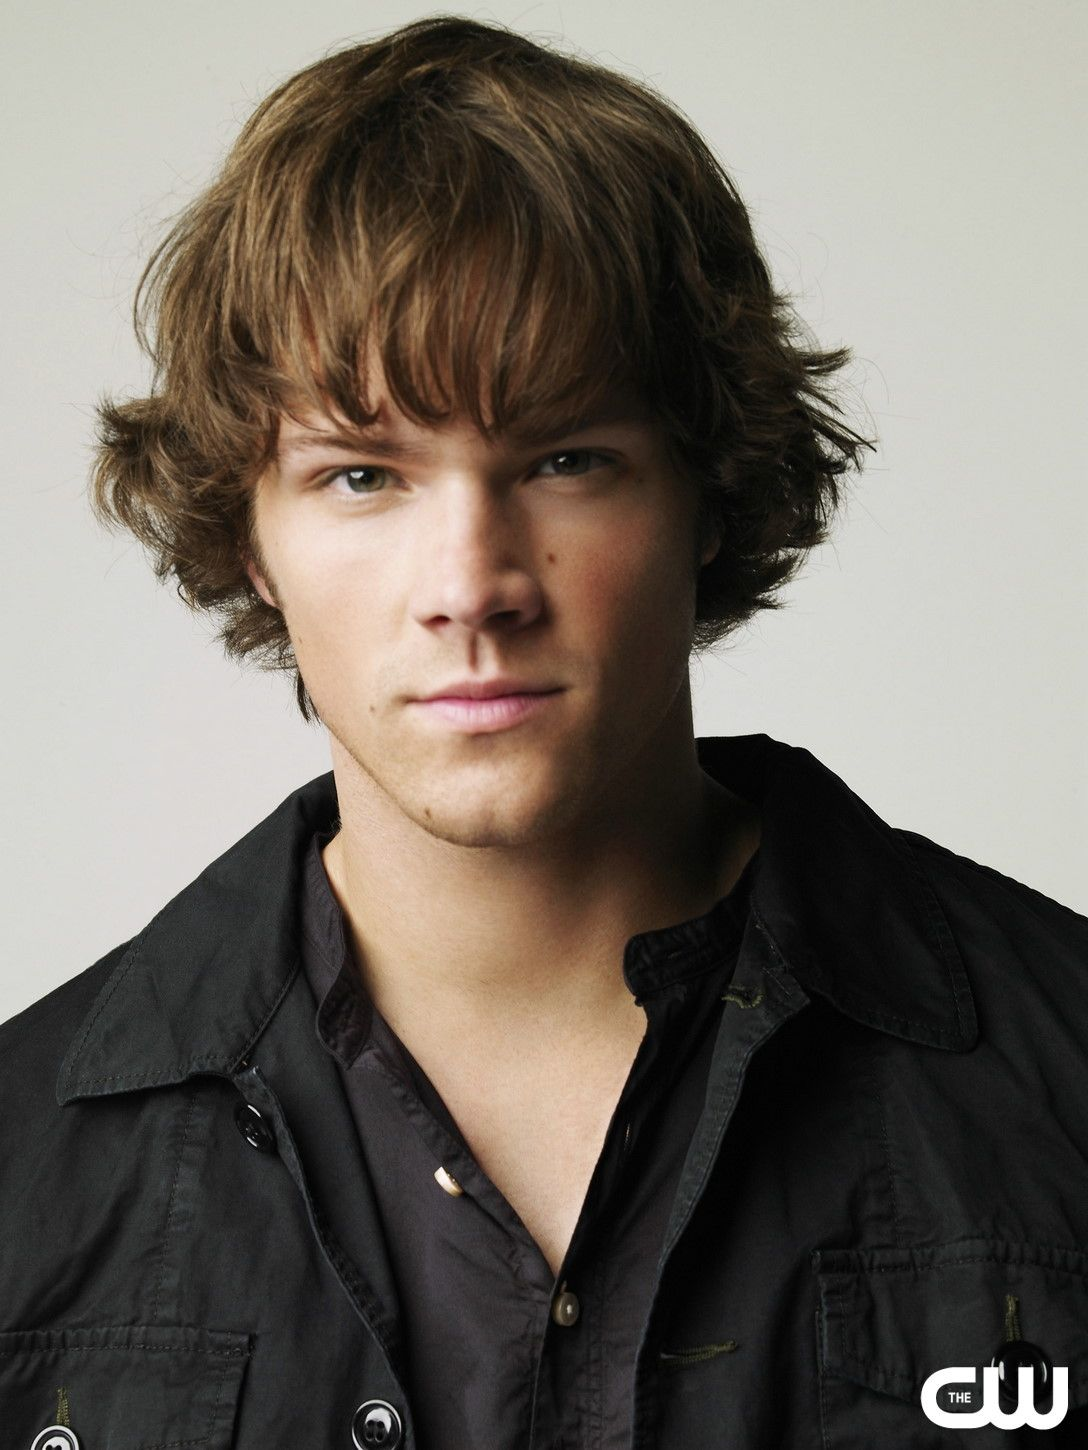 jared padalecki photoshootjared padalecki wife, jared padalecki рост, jared padalecki height, jared padalecki and jensen ackles, jared padalecki and genevieve cortese, jared padalecki gif, jared padalecki 2016, jared padalecki vk, jared padalecki young, jared padalecki photoshoot, jared padalecki twitter, jared padalecki биография, jared padalecki wedding, jared padalecki net worth, jared padalecki wikipedia, jared padalecki nightwing, jared padalecki films, jared padalecki жена, jared padalecki house, jared padalecki family